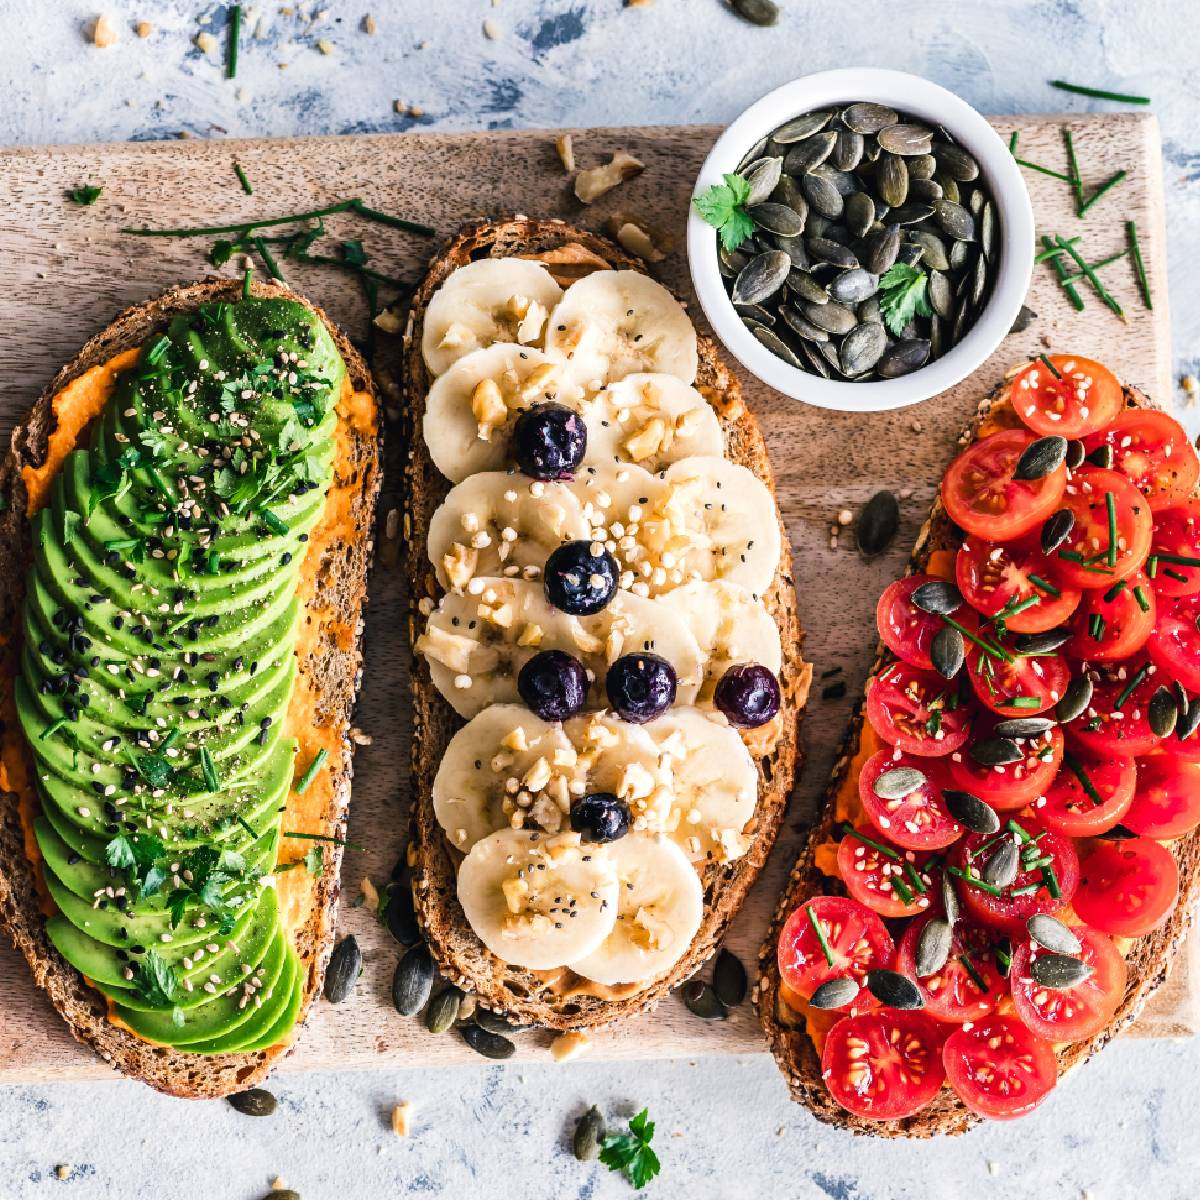 Zero-waste Vegan Brunch - Recipes & tips for a sustainable brunch